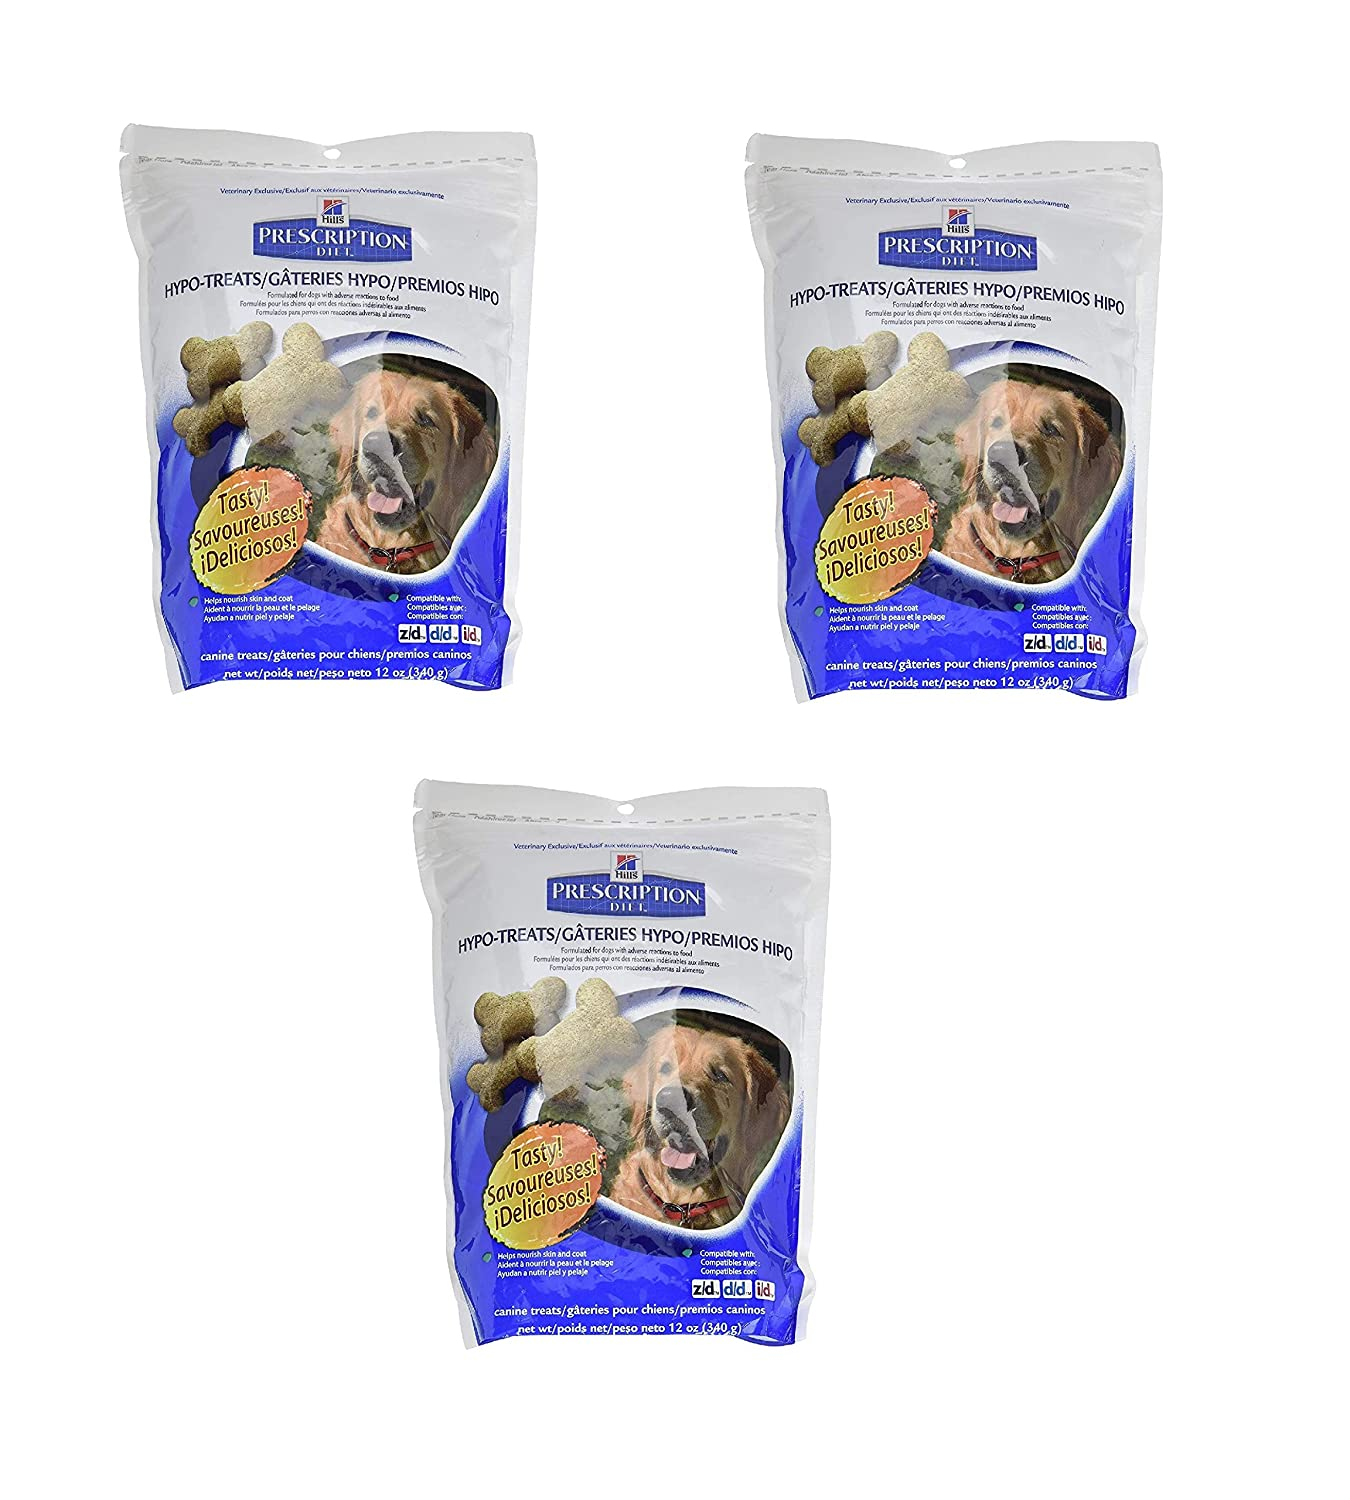 Hills Prescription Diet Hypoallergenic Canine Treats - 12oz (2 Pack): Pet Supplies: Amazon.com